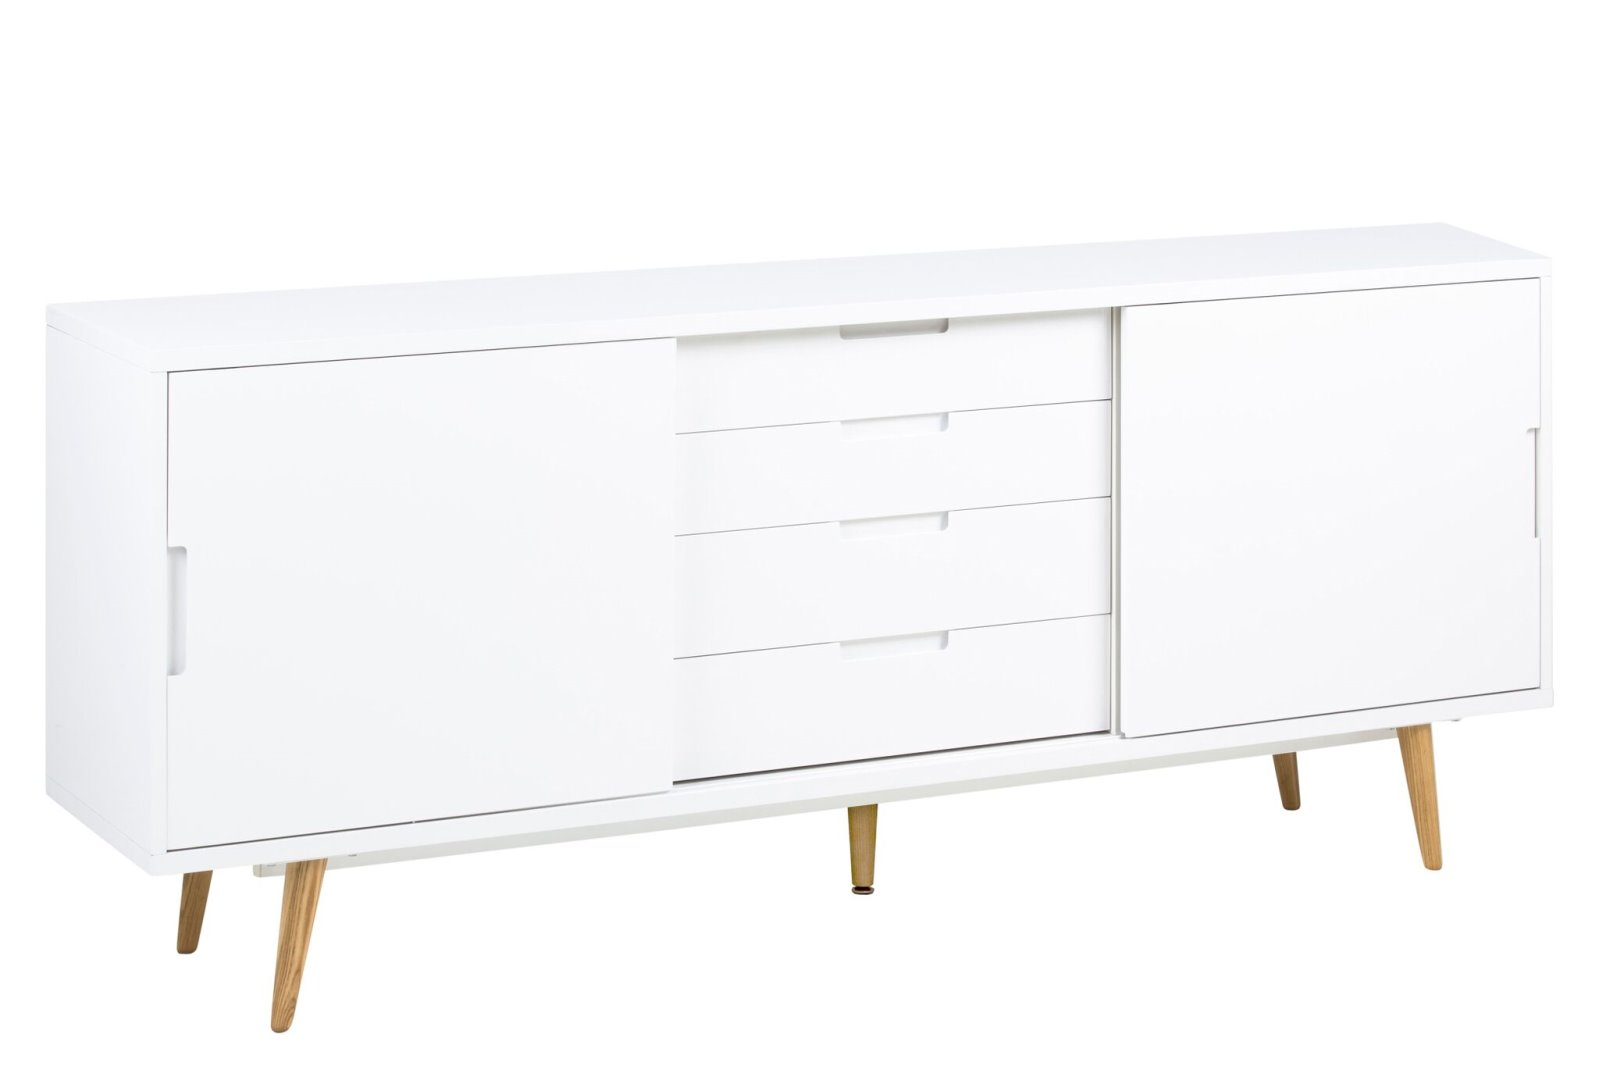 pkline anrichte emmie in weiss hochglanz sideboard kommode schrank m bel wohnen schr nke. Black Bedroom Furniture Sets. Home Design Ideas